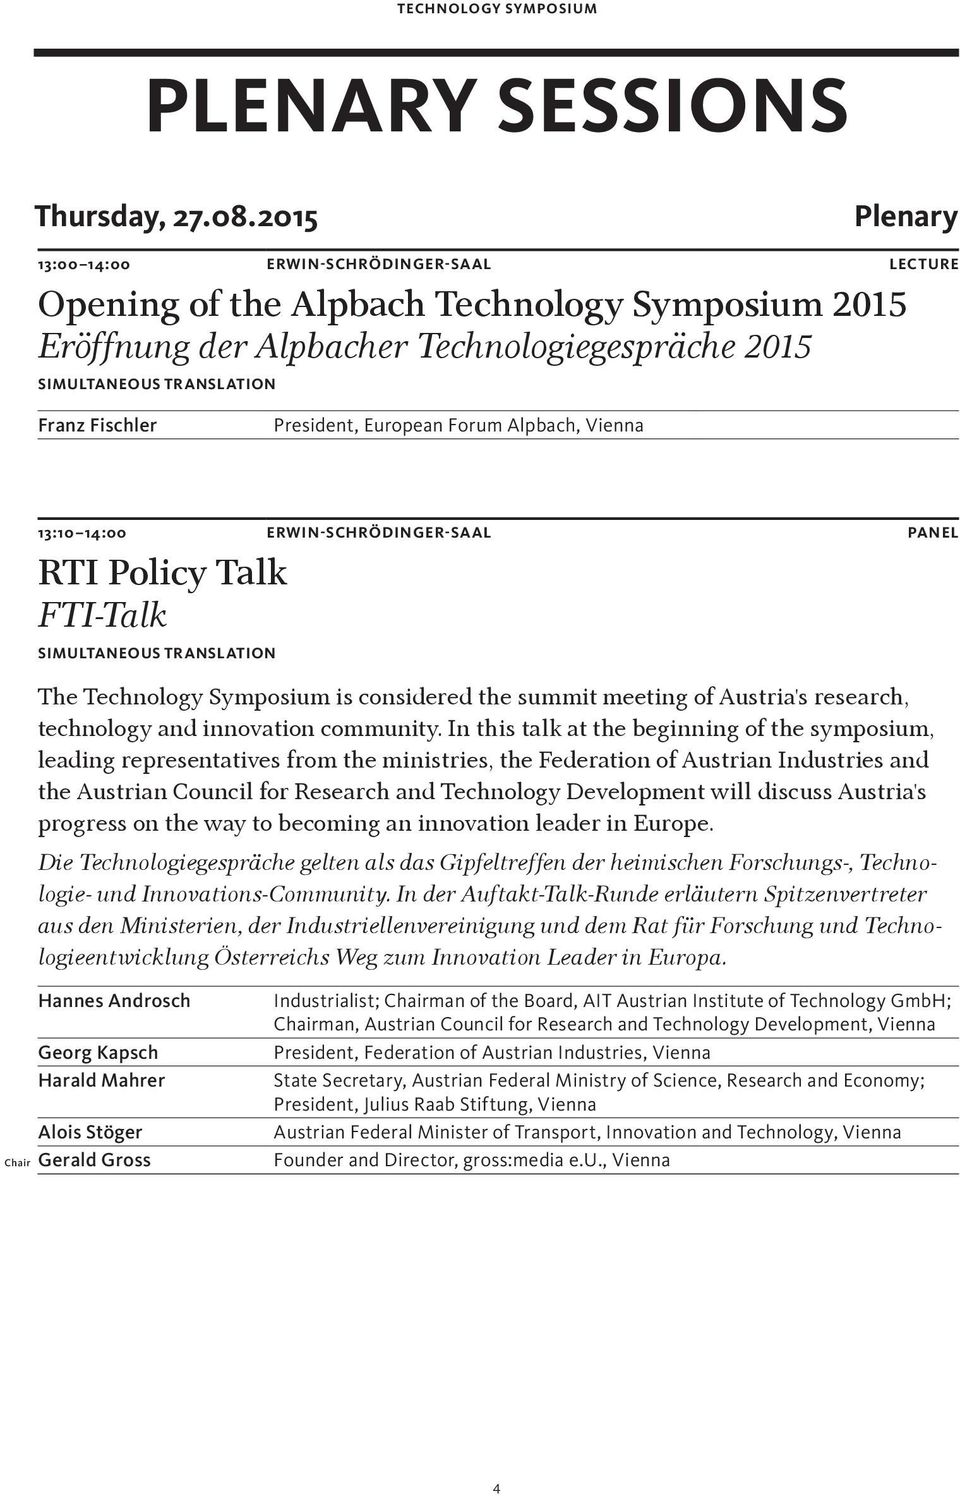 President, European Forum Alpbach, Vienna 13:10 14:00 Erwin-Schrödinger-Saal Panel RTI Policy Talk FTI-Talk Simultaneous translation The Technology Symposium is considered the summit meeting of